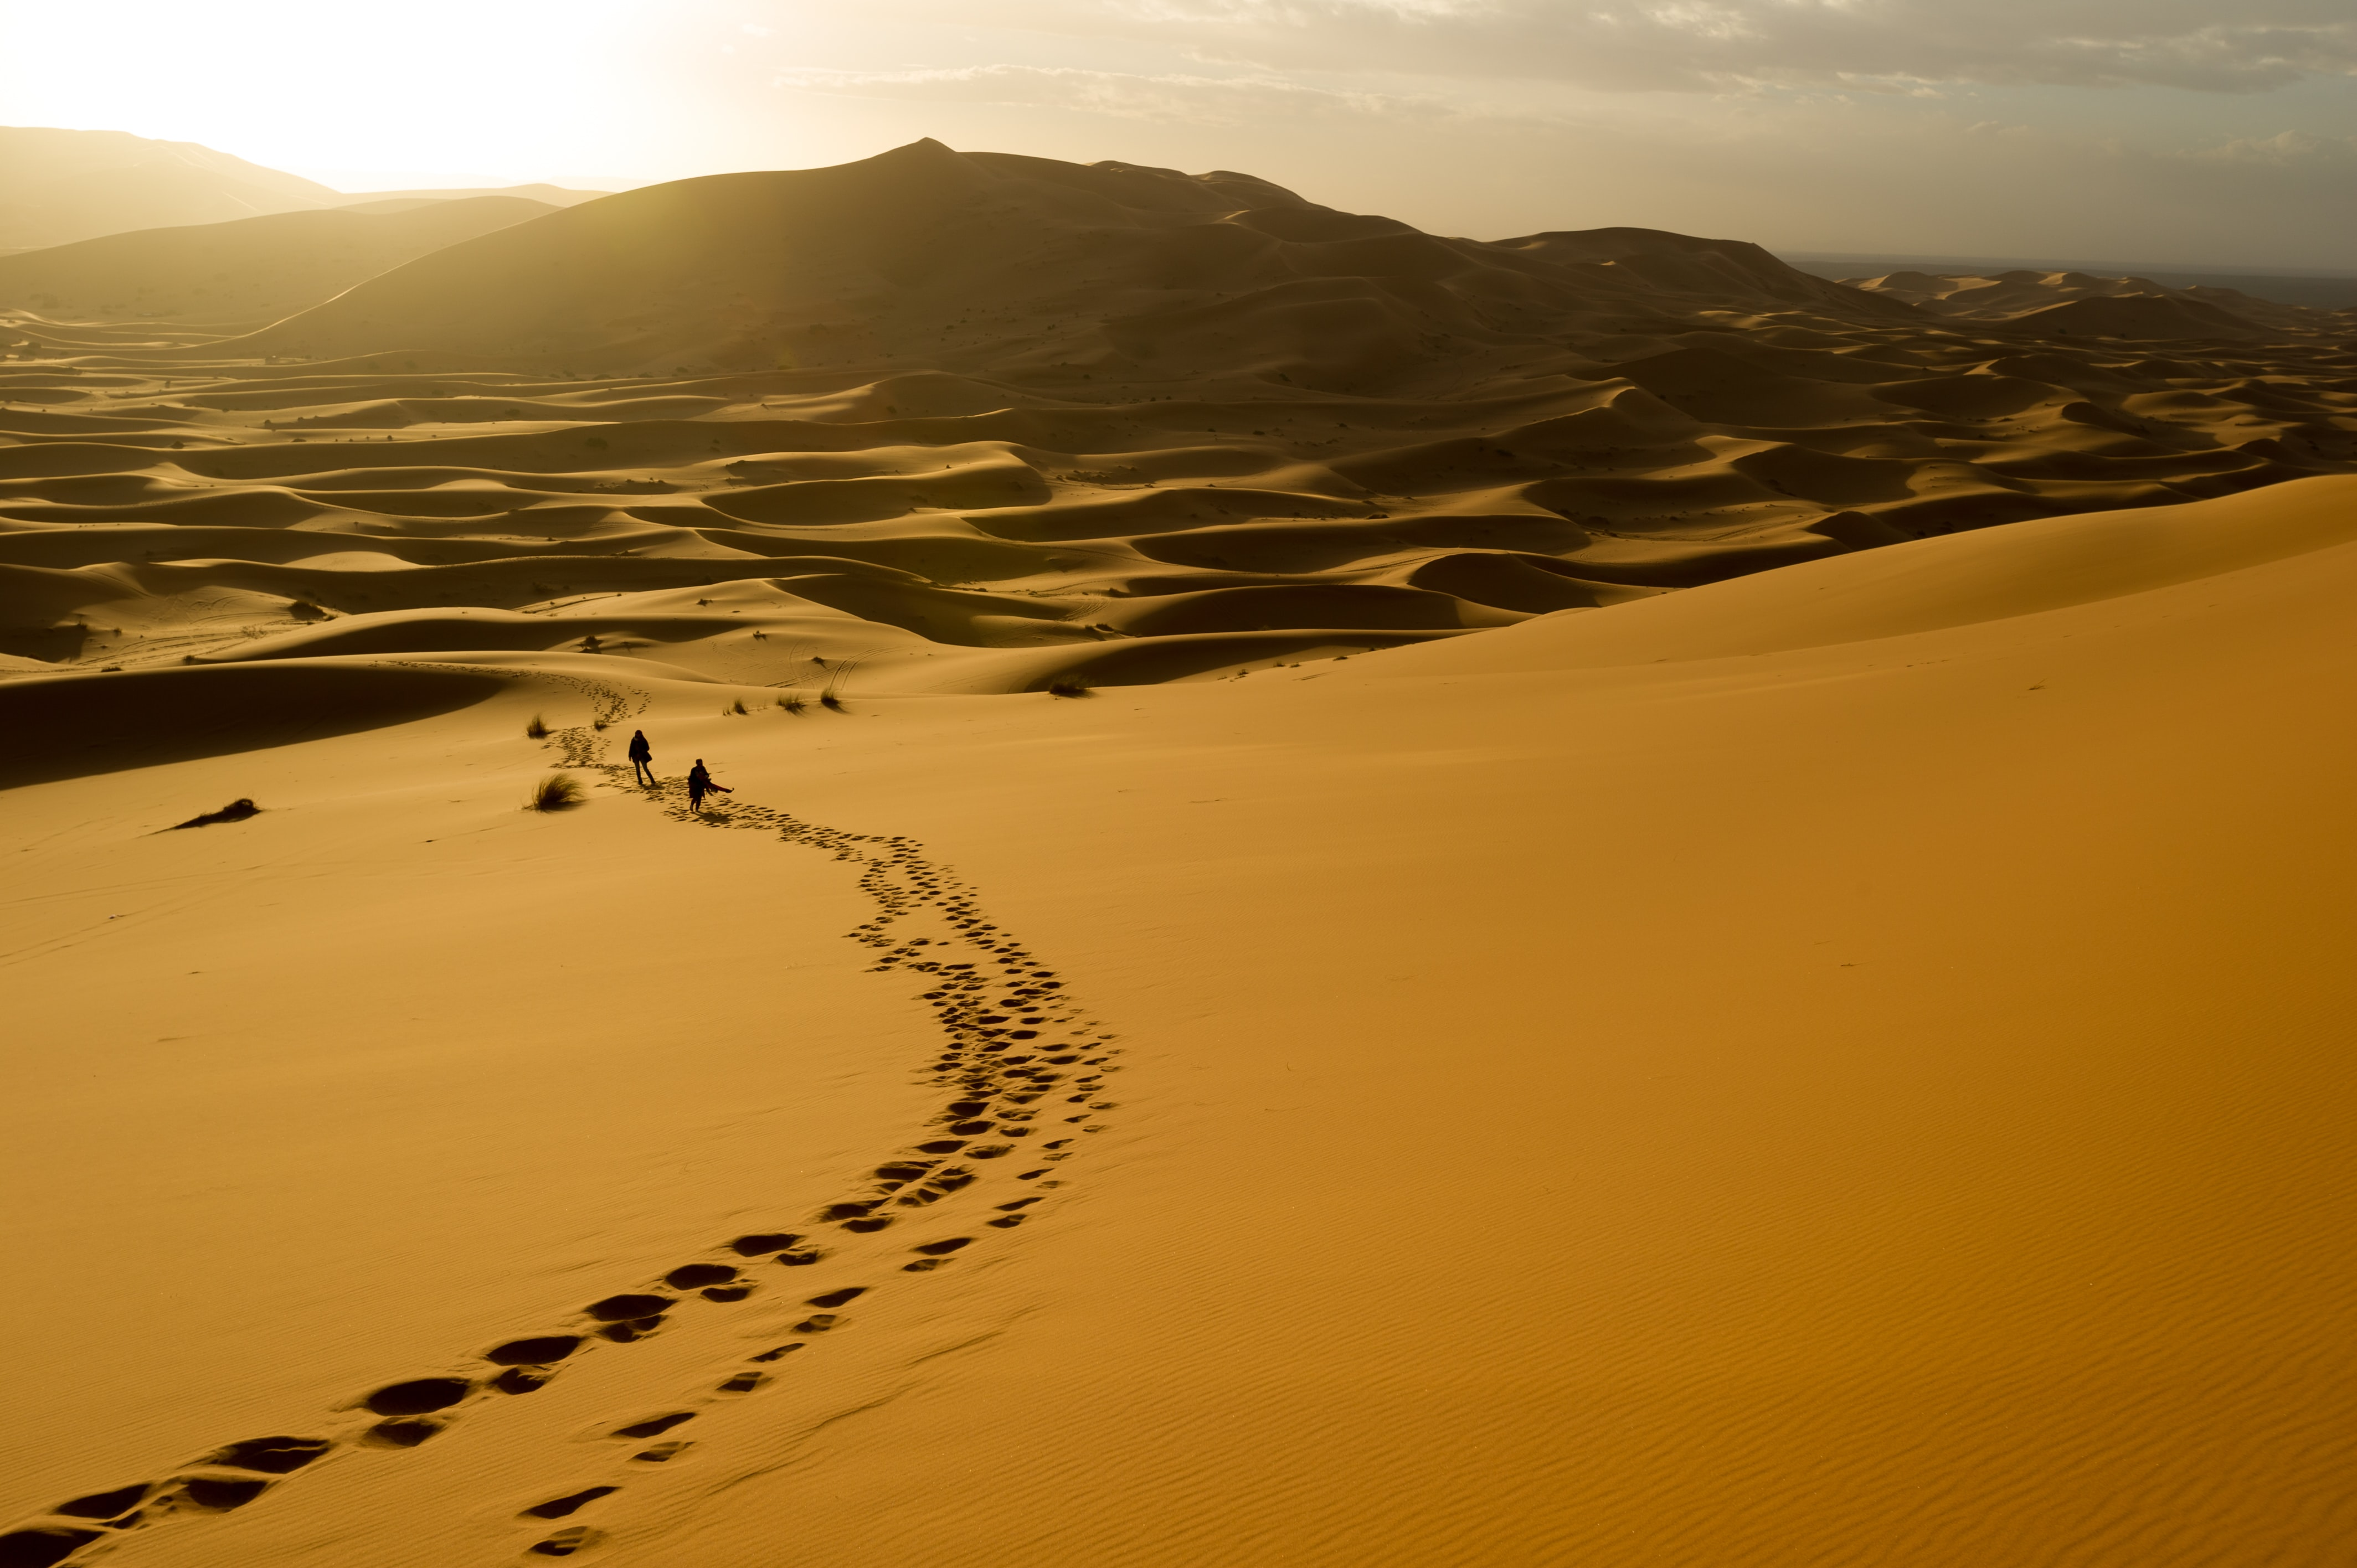 people walking on desert during sunset